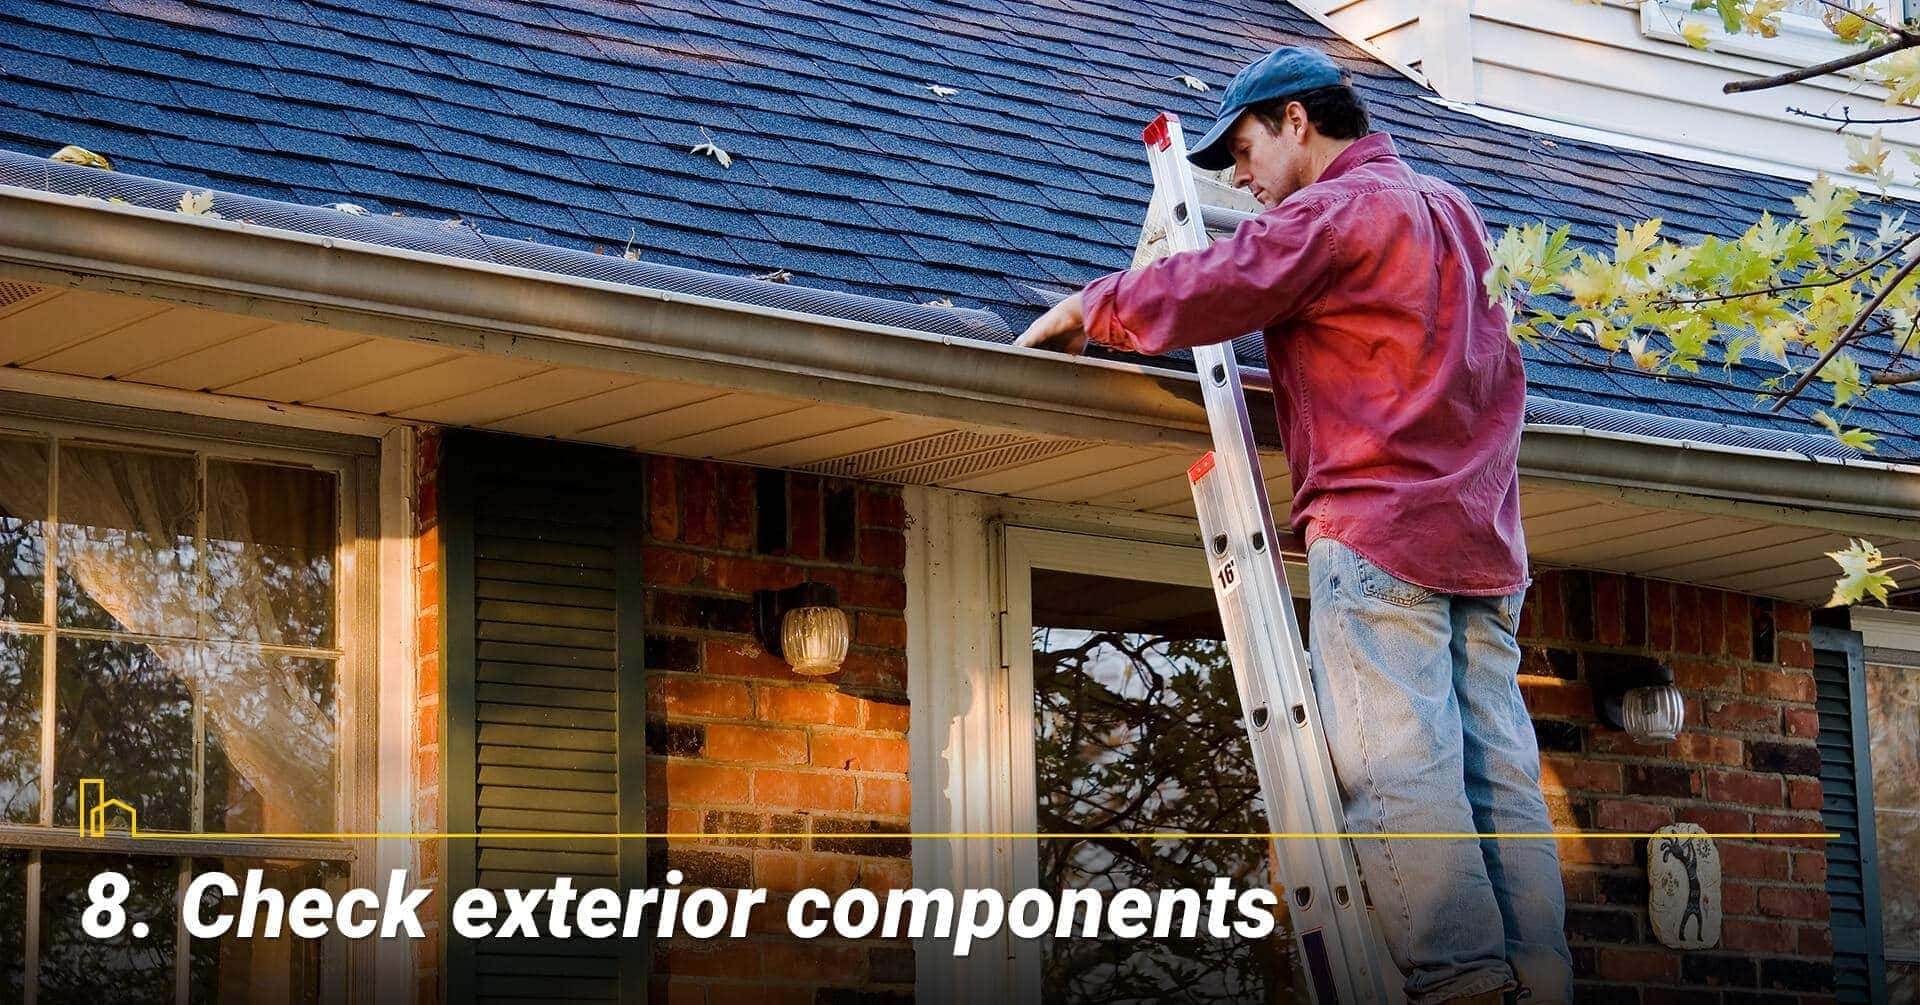 Check exterior components, inspect the exterior